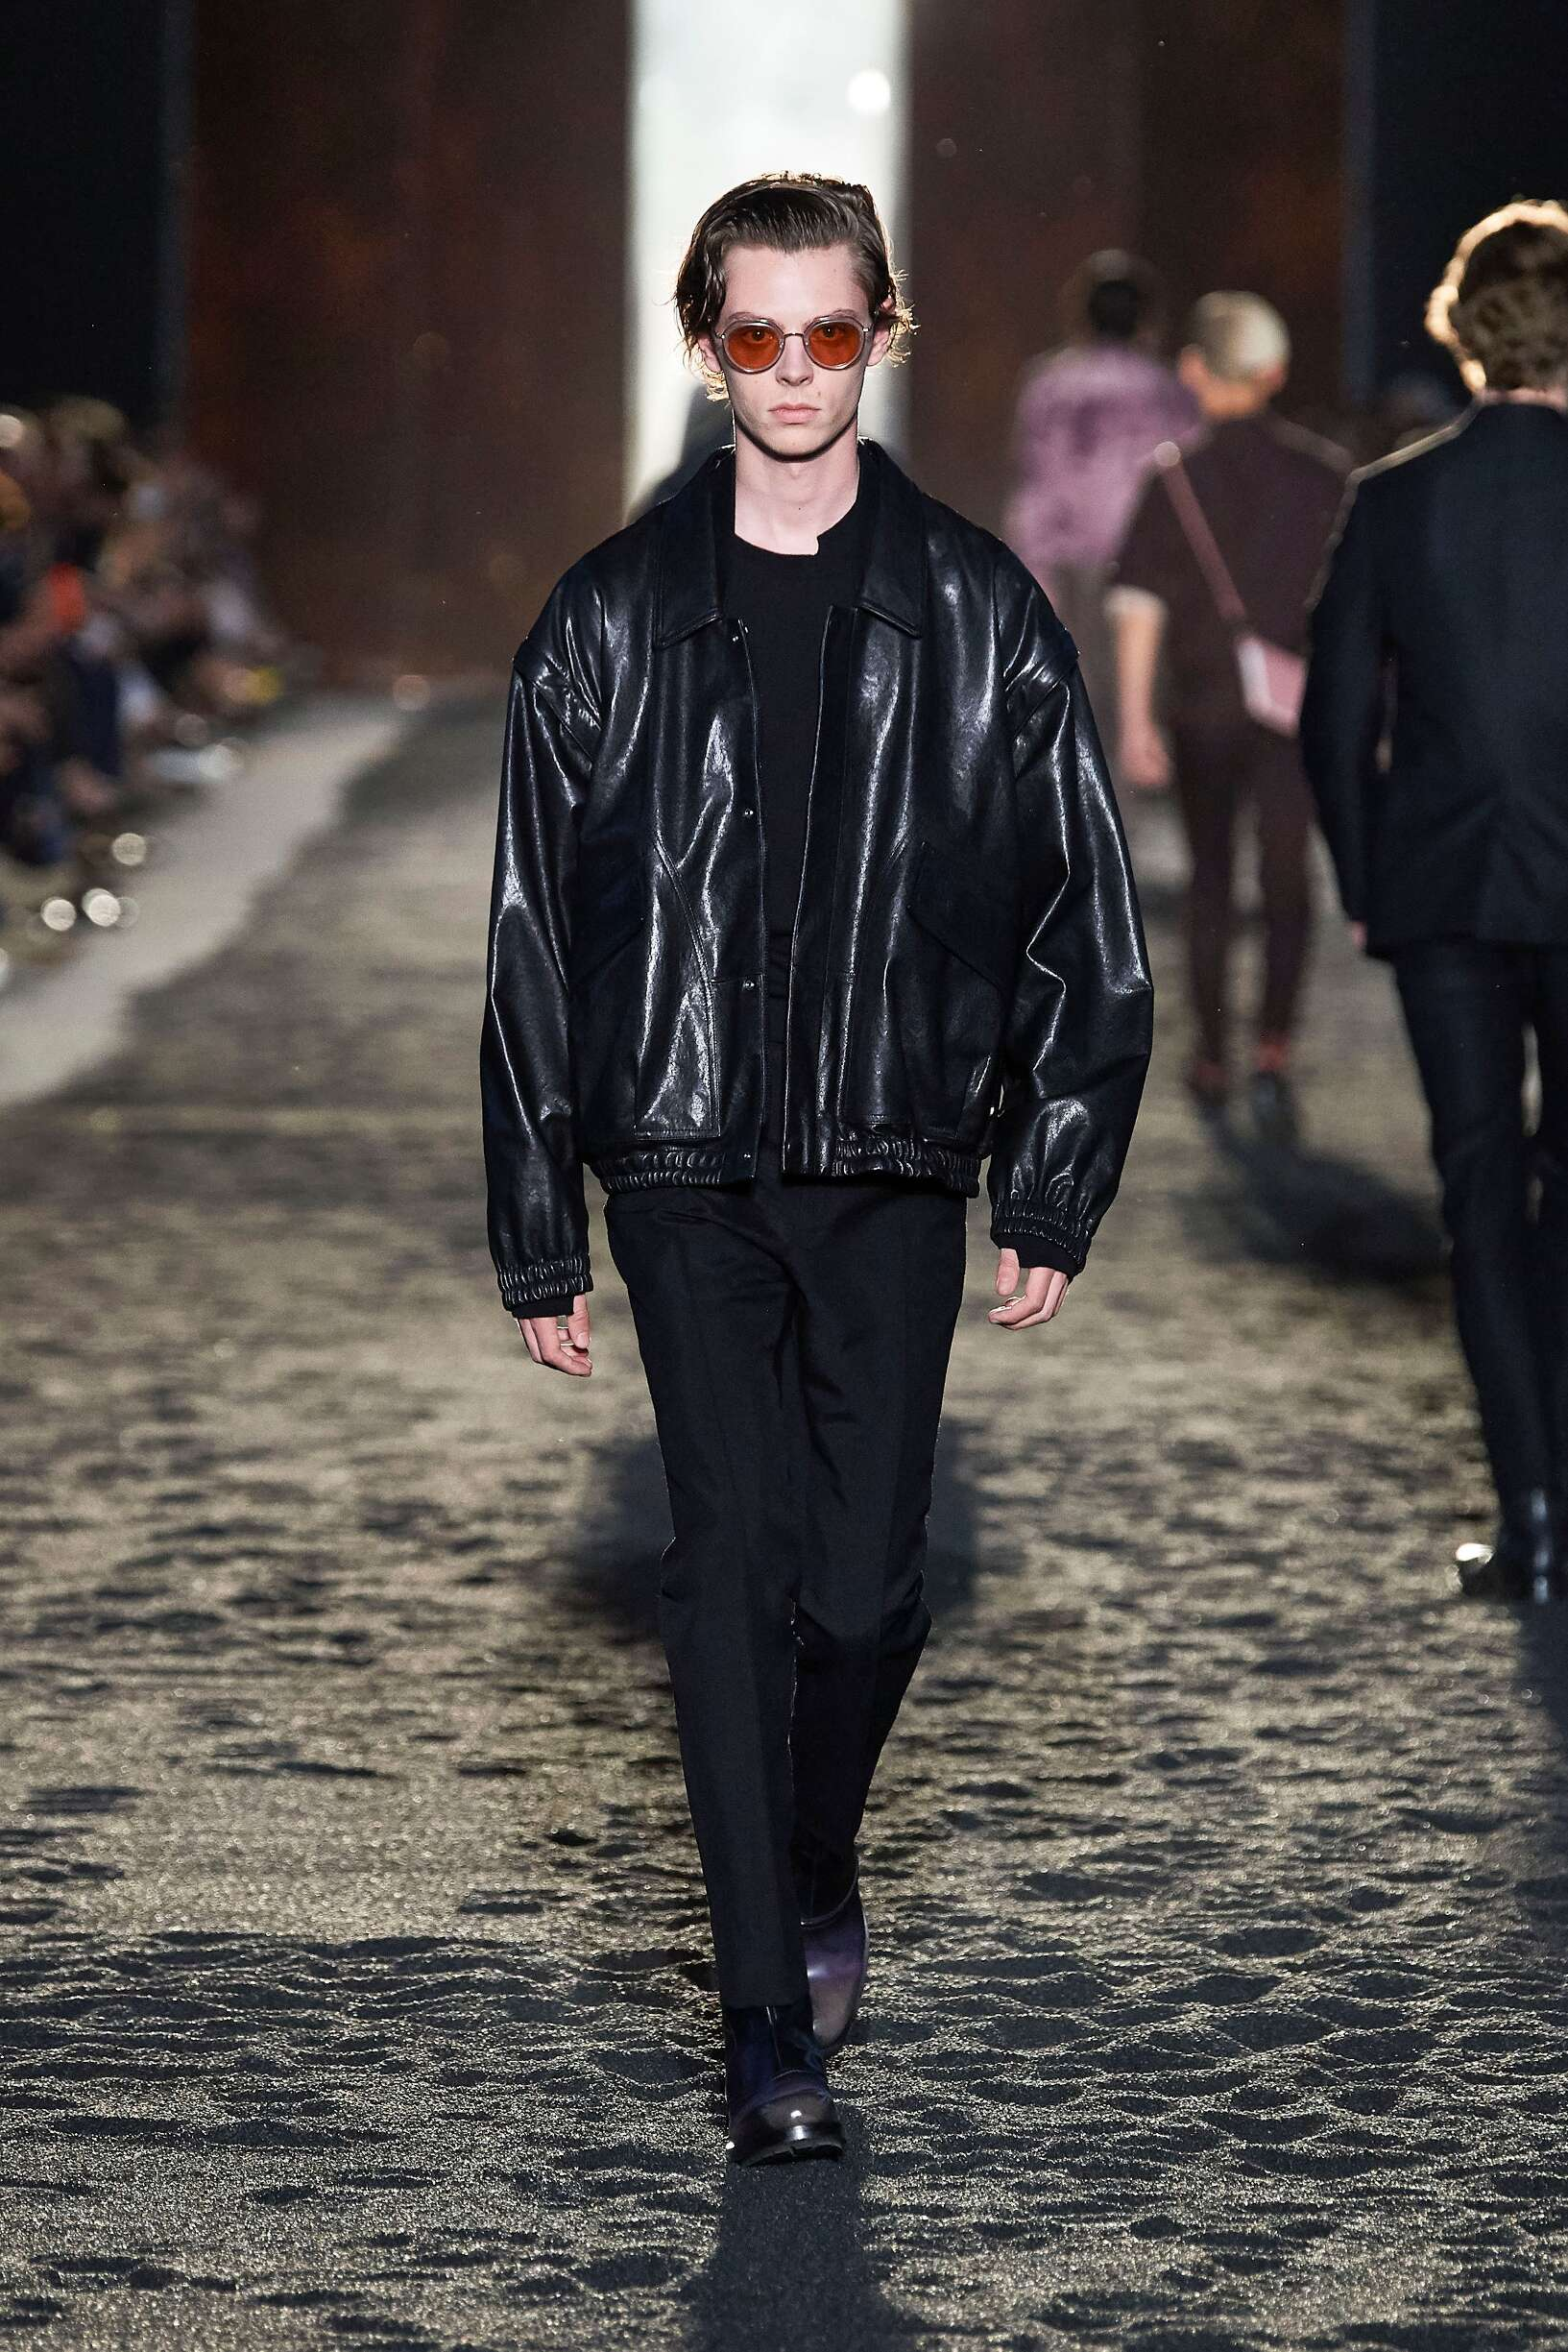 Fashion Model Ermenegildo Zegna XXX Catwalk